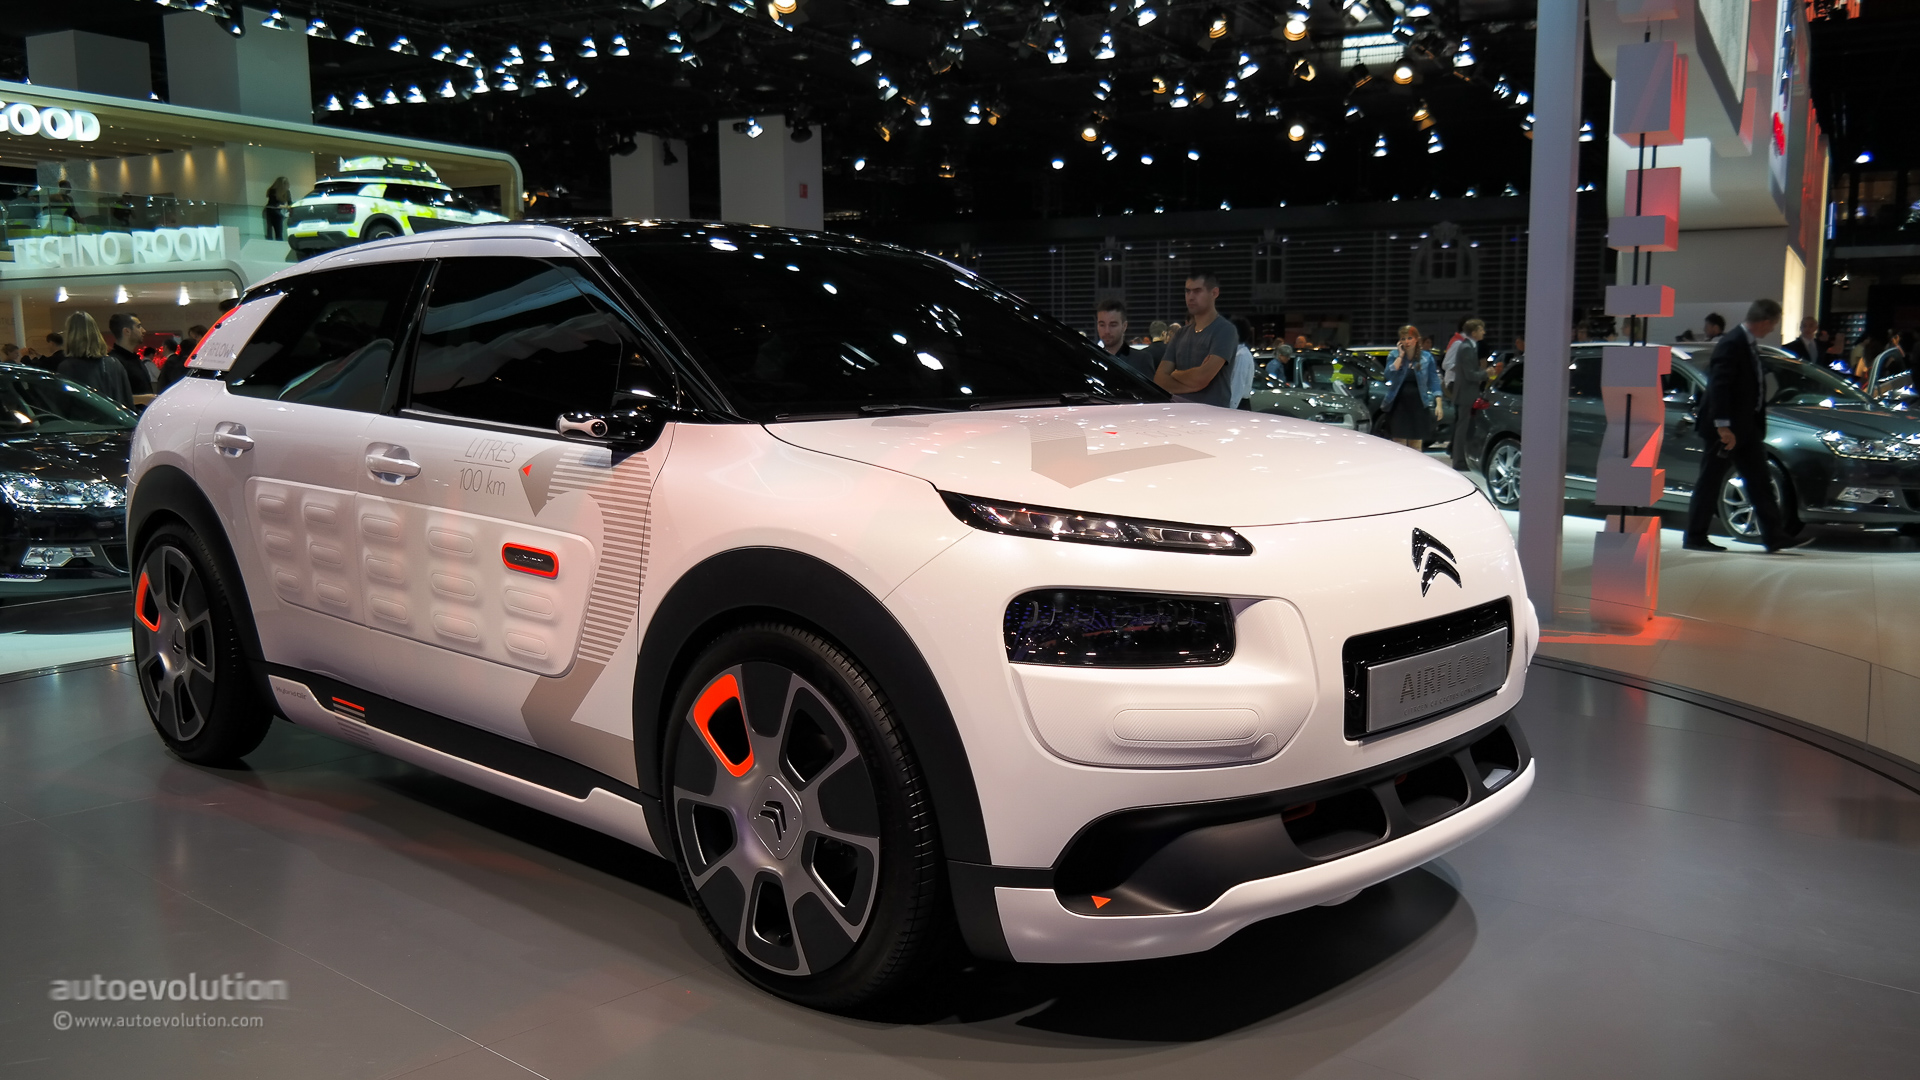 citroen c4 cactus airflow 2l concept hisses at paris 2014 live photos autoevolution. Black Bedroom Furniture Sets. Home Design Ideas